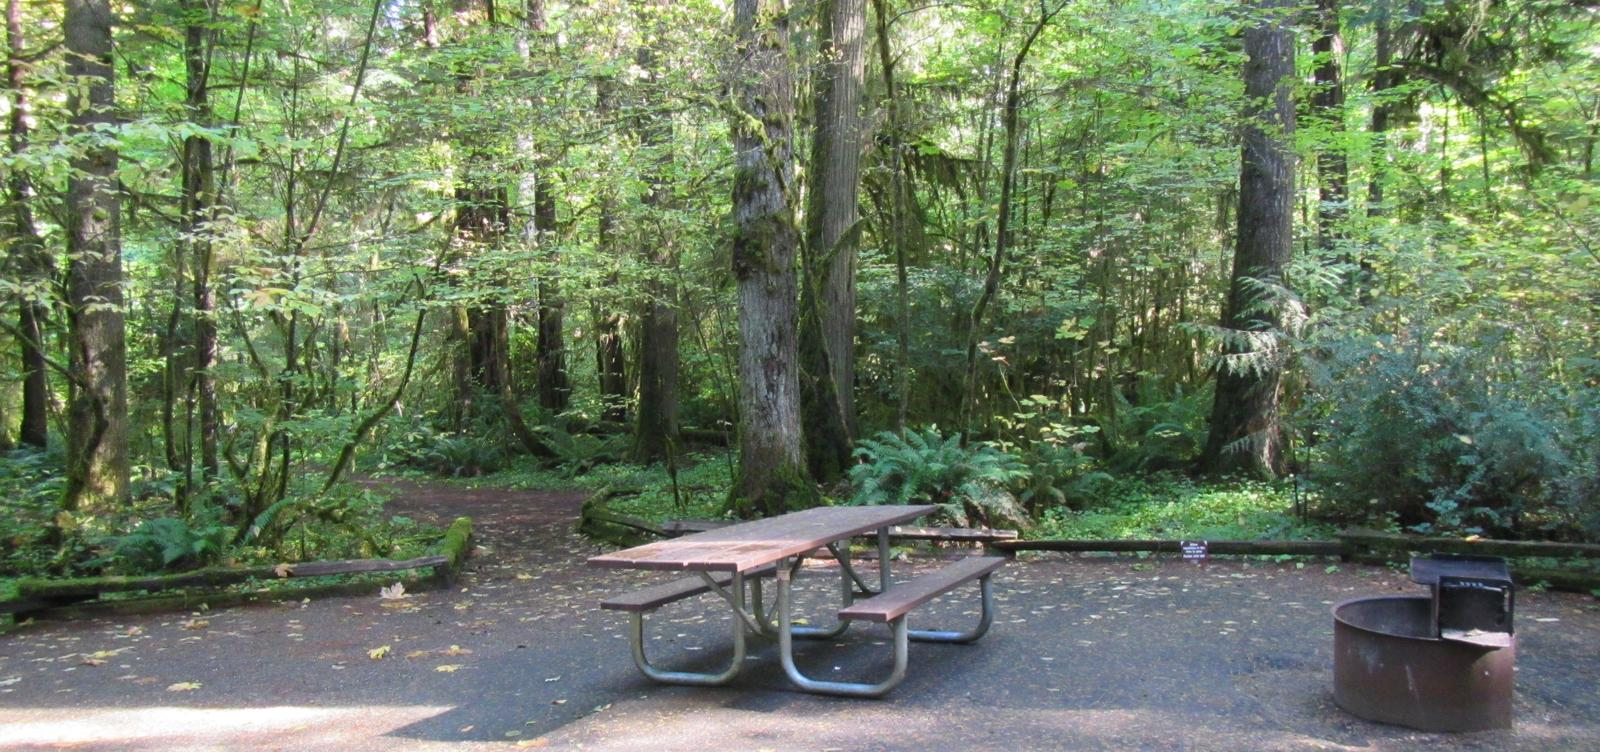 Camp area with picnic table, fire ring, access to river trail